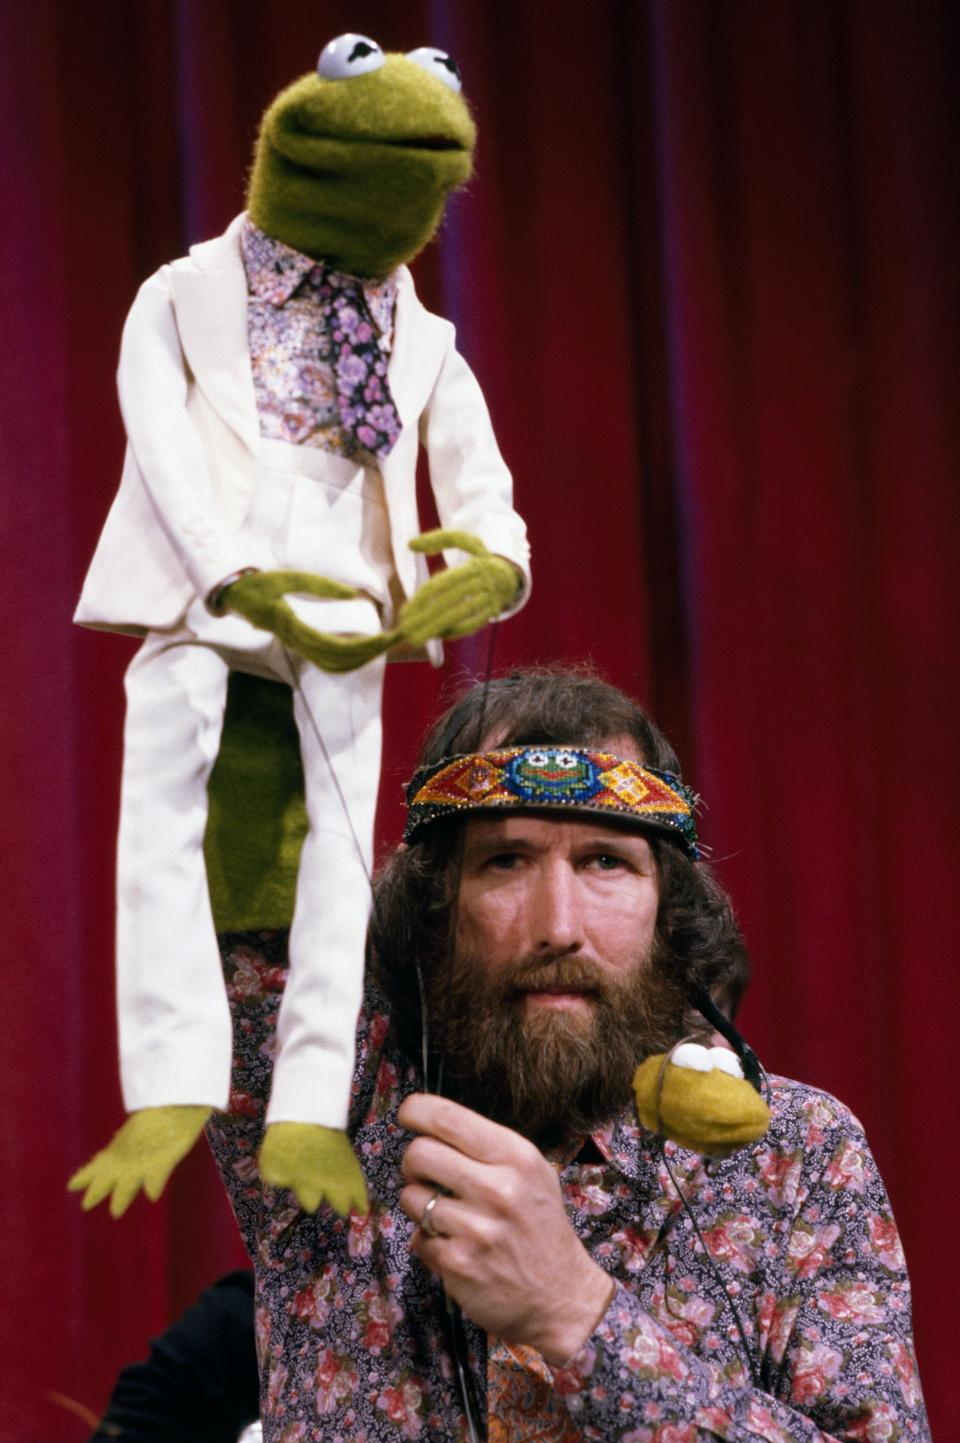 Jim Henson was the original voice of Kermit The Frog (Photo: Nancy Moran via Getty Images)